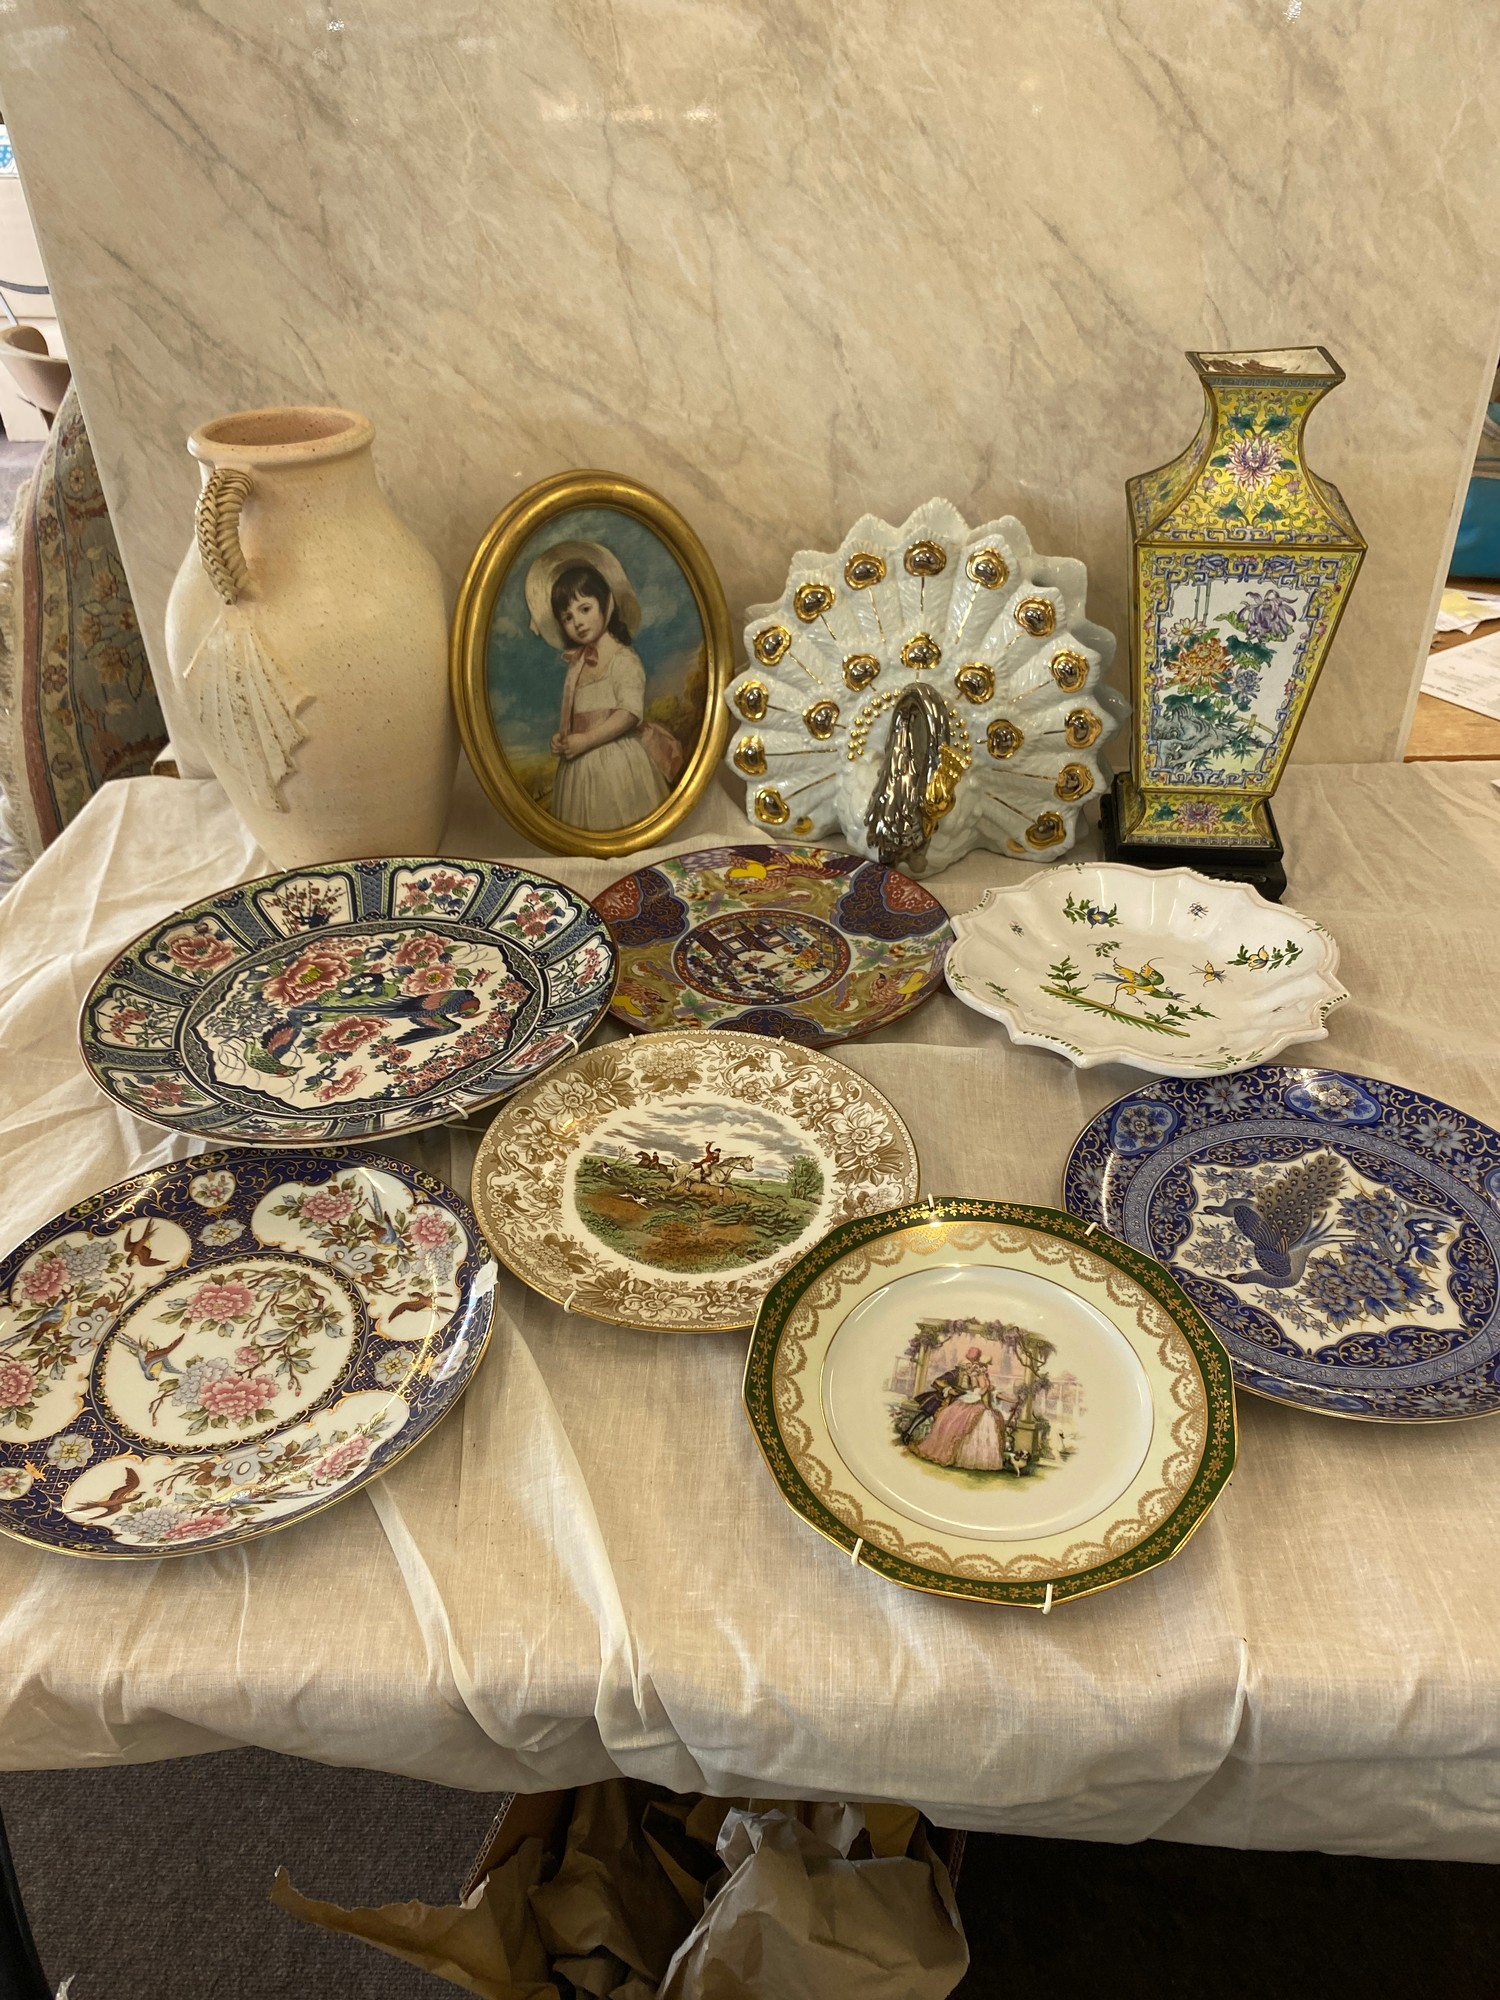 Selection of miscellaneous includes tin vase on stand, framed picture, plates etc